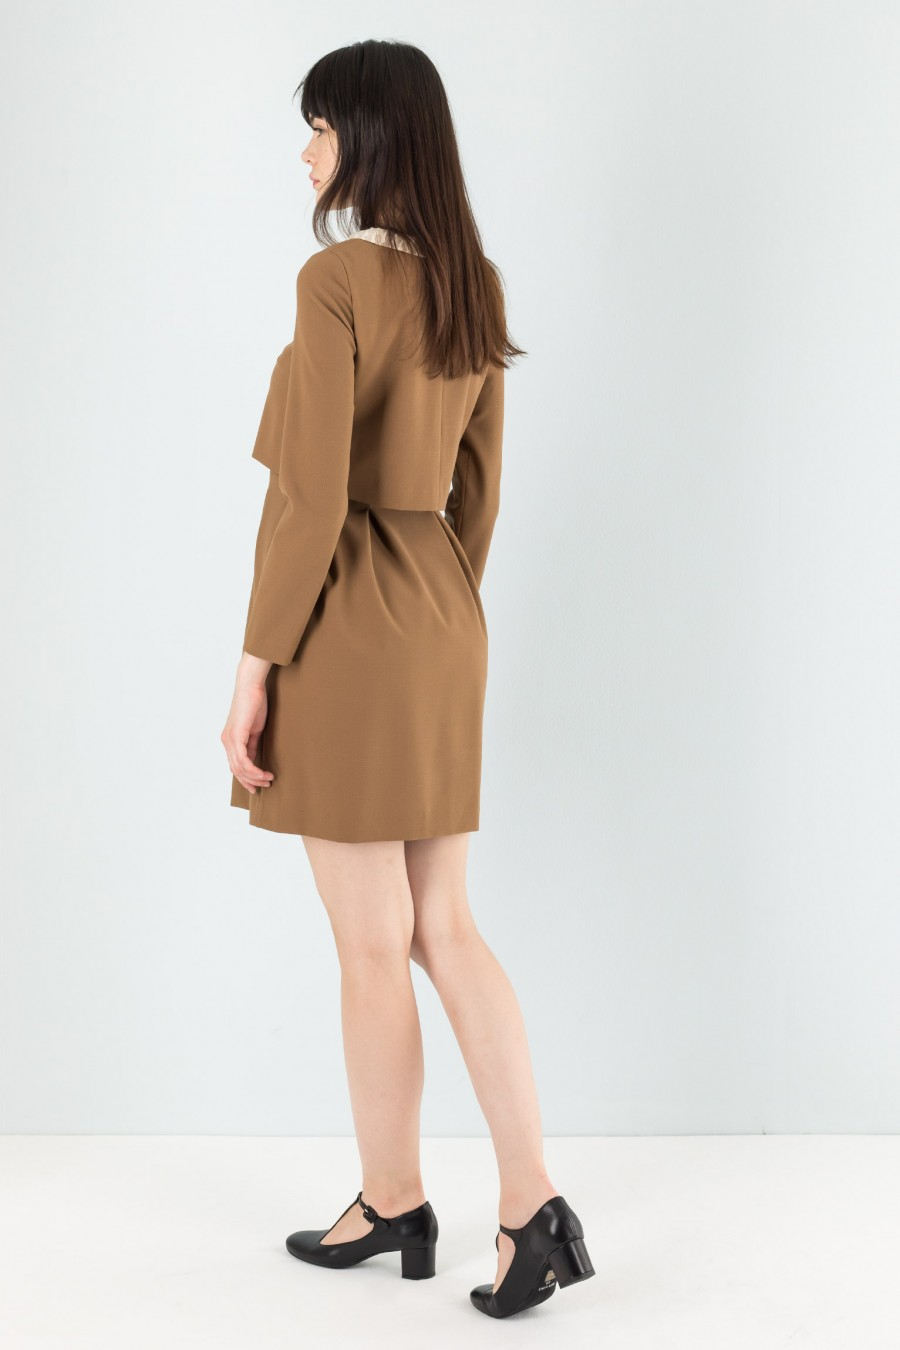 Lazzari autumnal dress